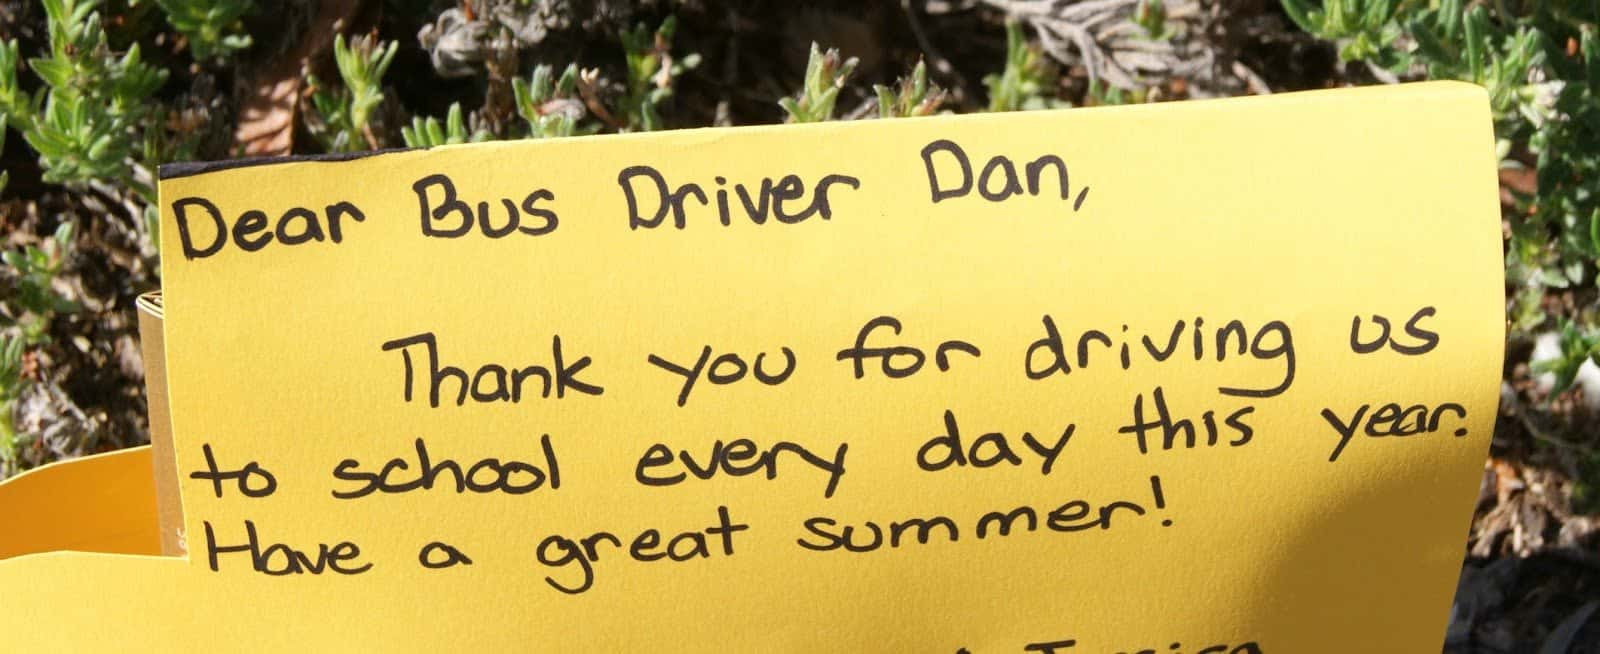 photo relating to Bus Driver Thank You Card Printable called University Bus Driver Appreciation Graude and Encouragement